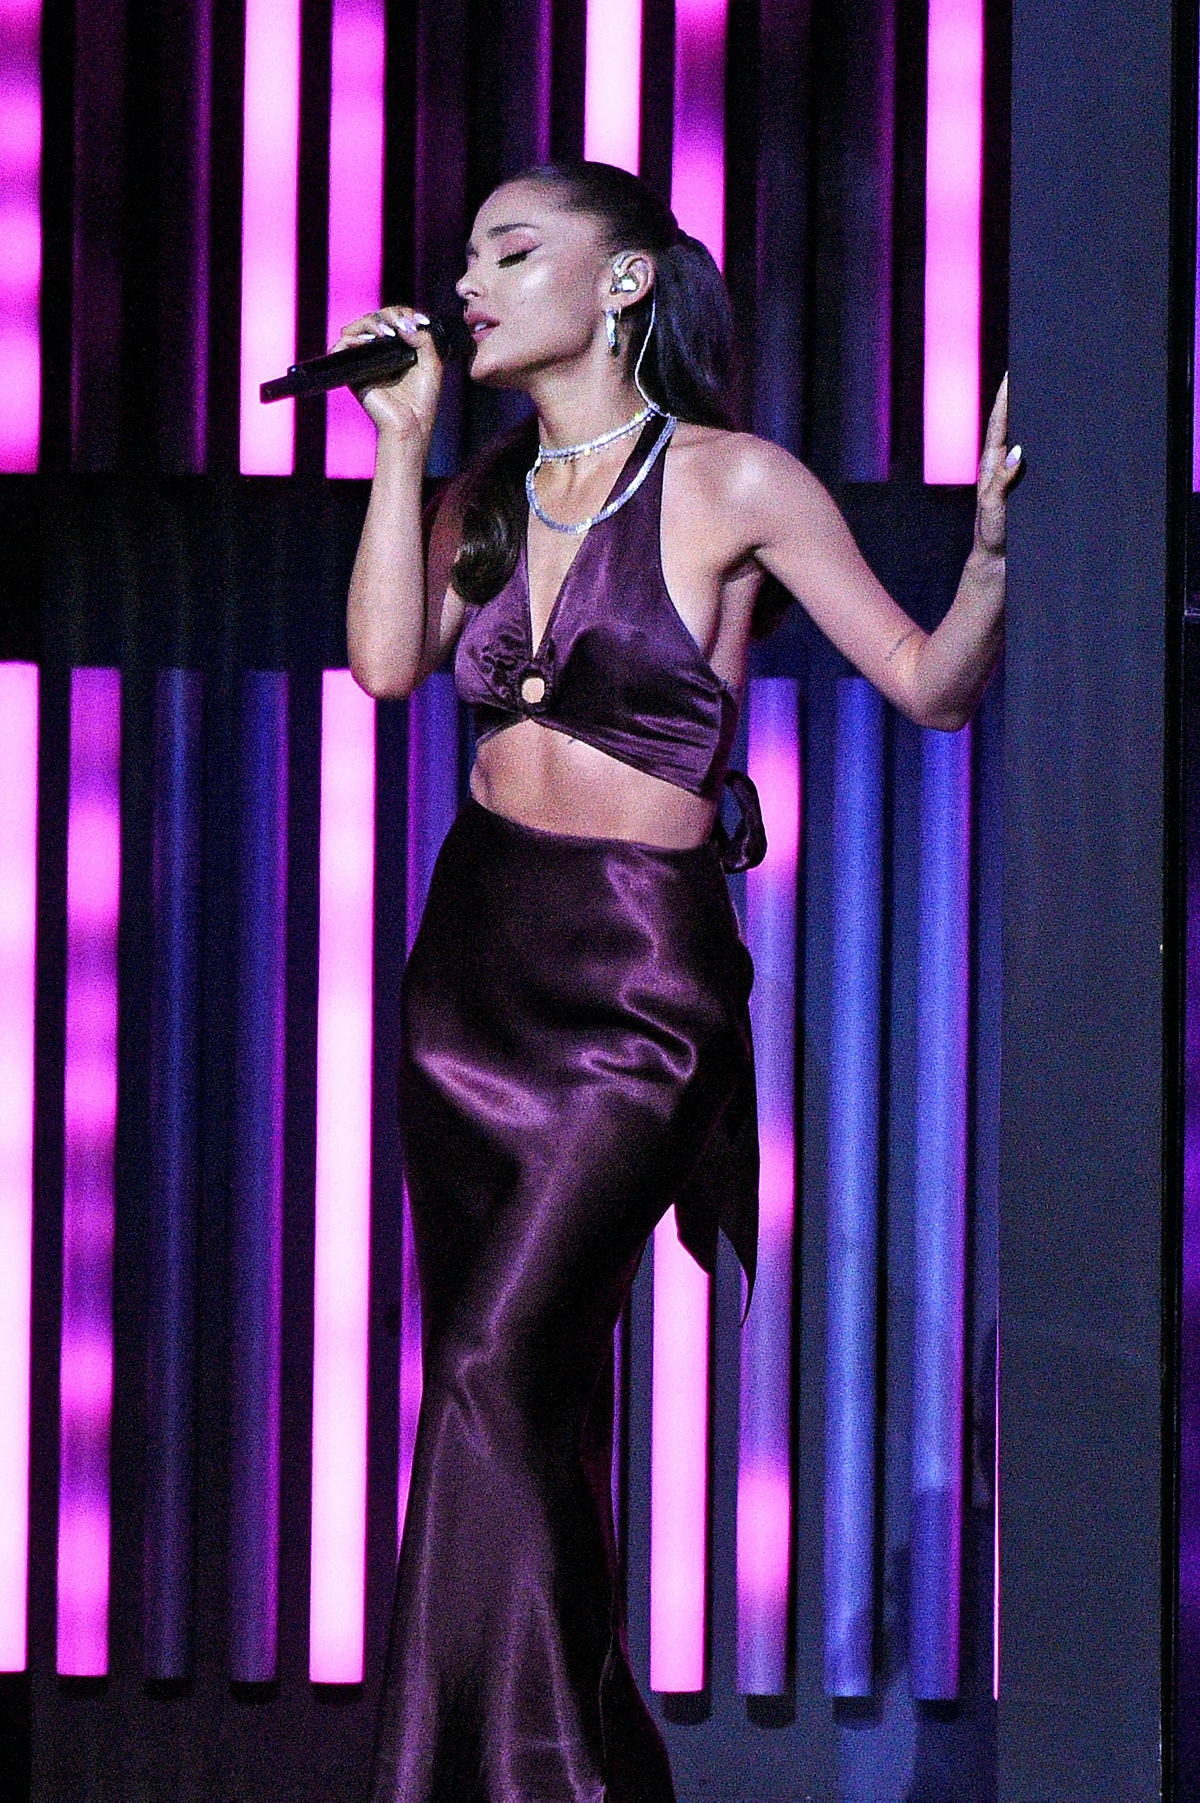 LOS ANGELES, CALIFORNIA - MAY 27: (EDITORIAL USE ONLY) (EDITORS NOTE: This image has been retouched) In this image released on May 27, Ariana Grande performs onstage at the 2021 iHeartRadio Music Awards at The Dolby Theatre in Los Angeles, California, which was broadcast live on FOX on May 27, 2021. (Photo by Kevin Mazur/Getty Images for iHeartMedia)